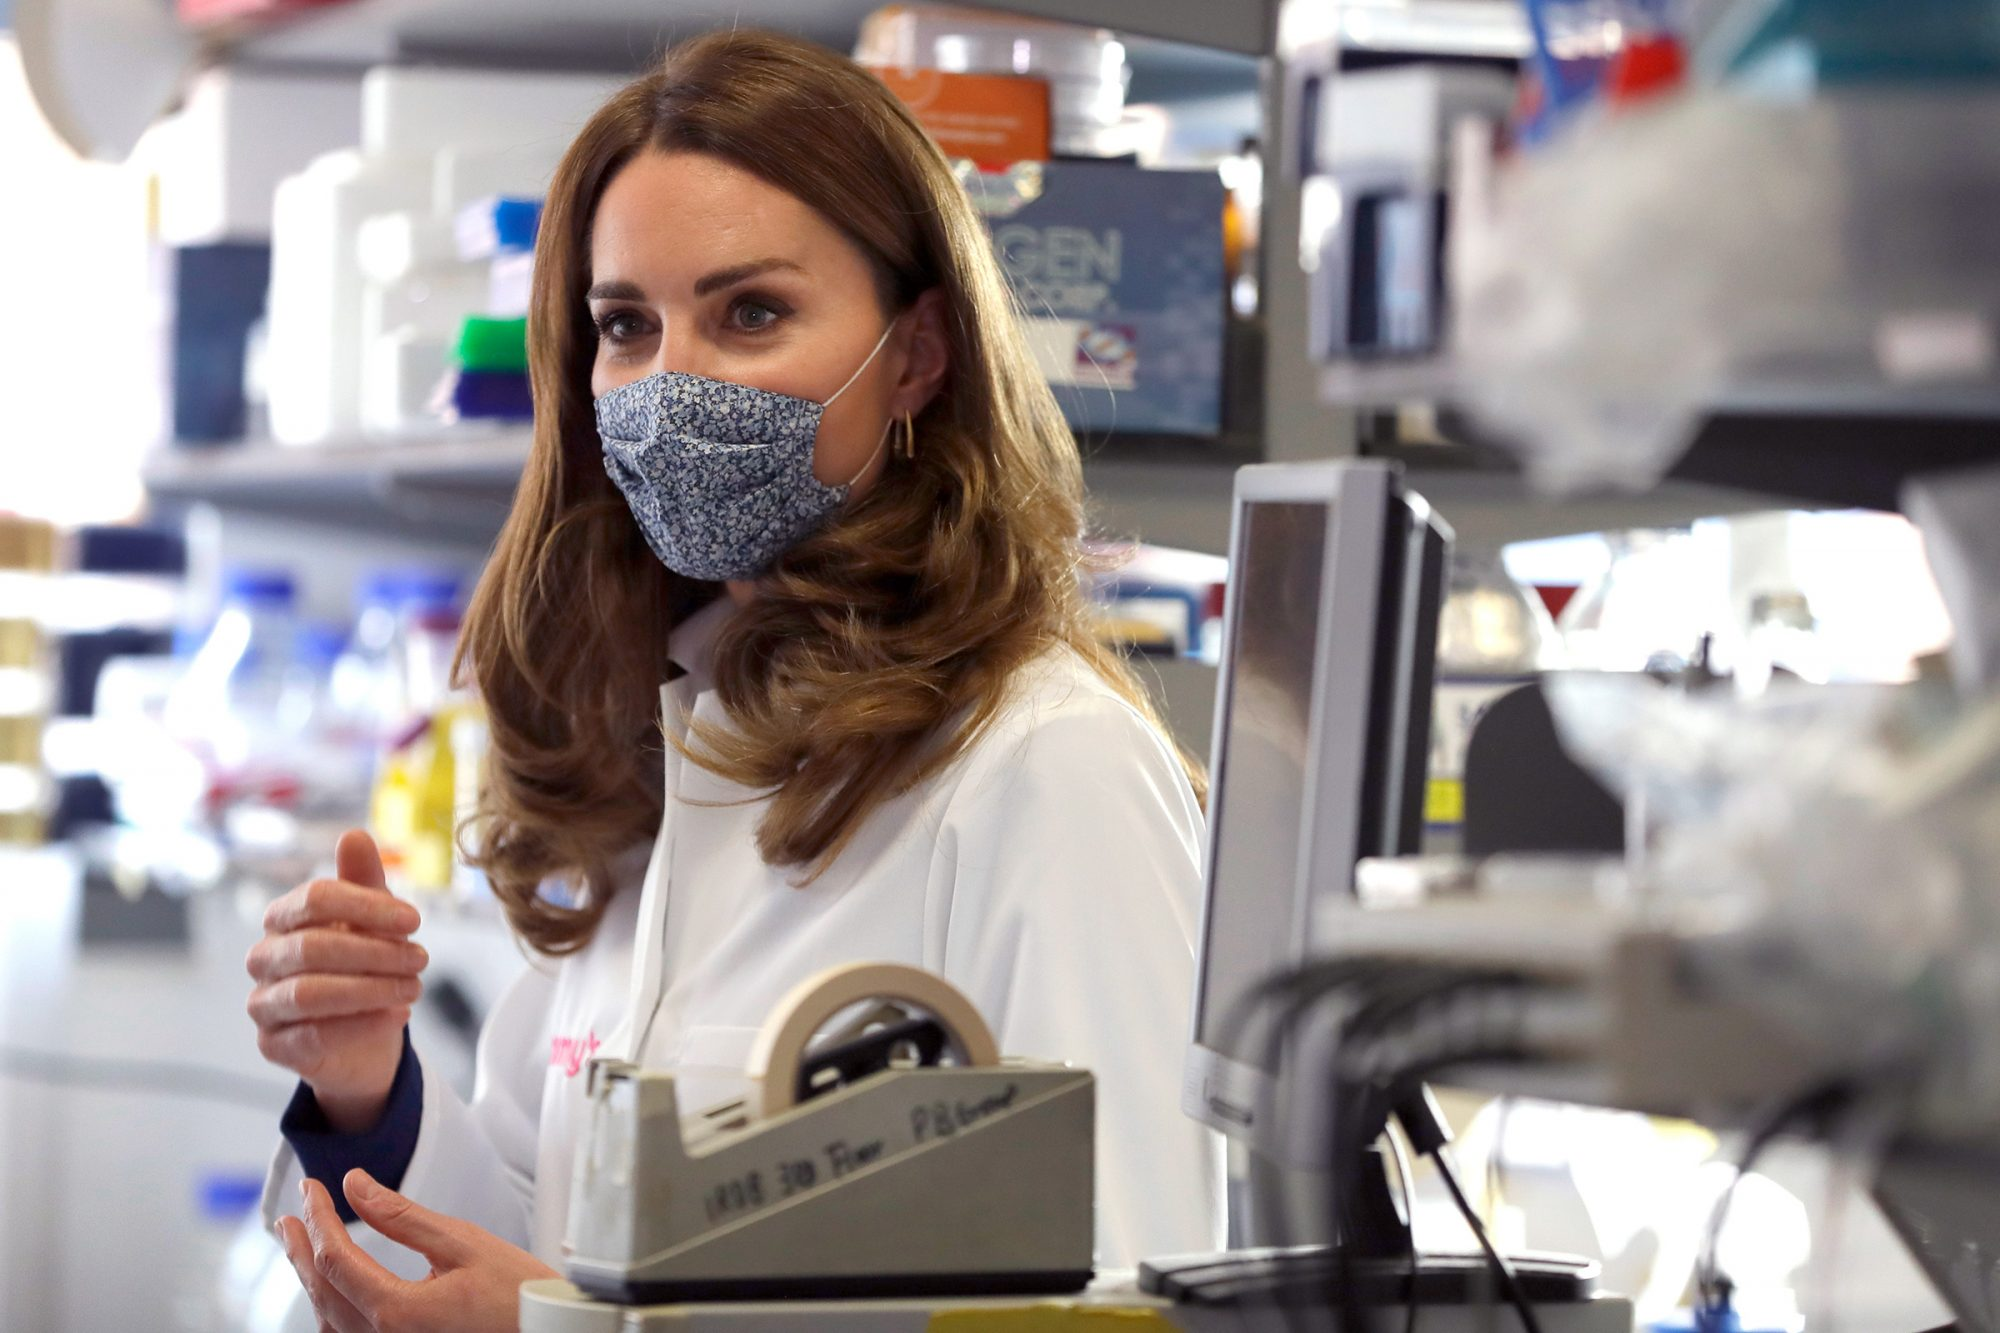 Catherine, Duchess of Cambridge tours a laboratory, during a visit to the Institute of Reproductive and Development Biology, at Imperial College on October 14, 2020